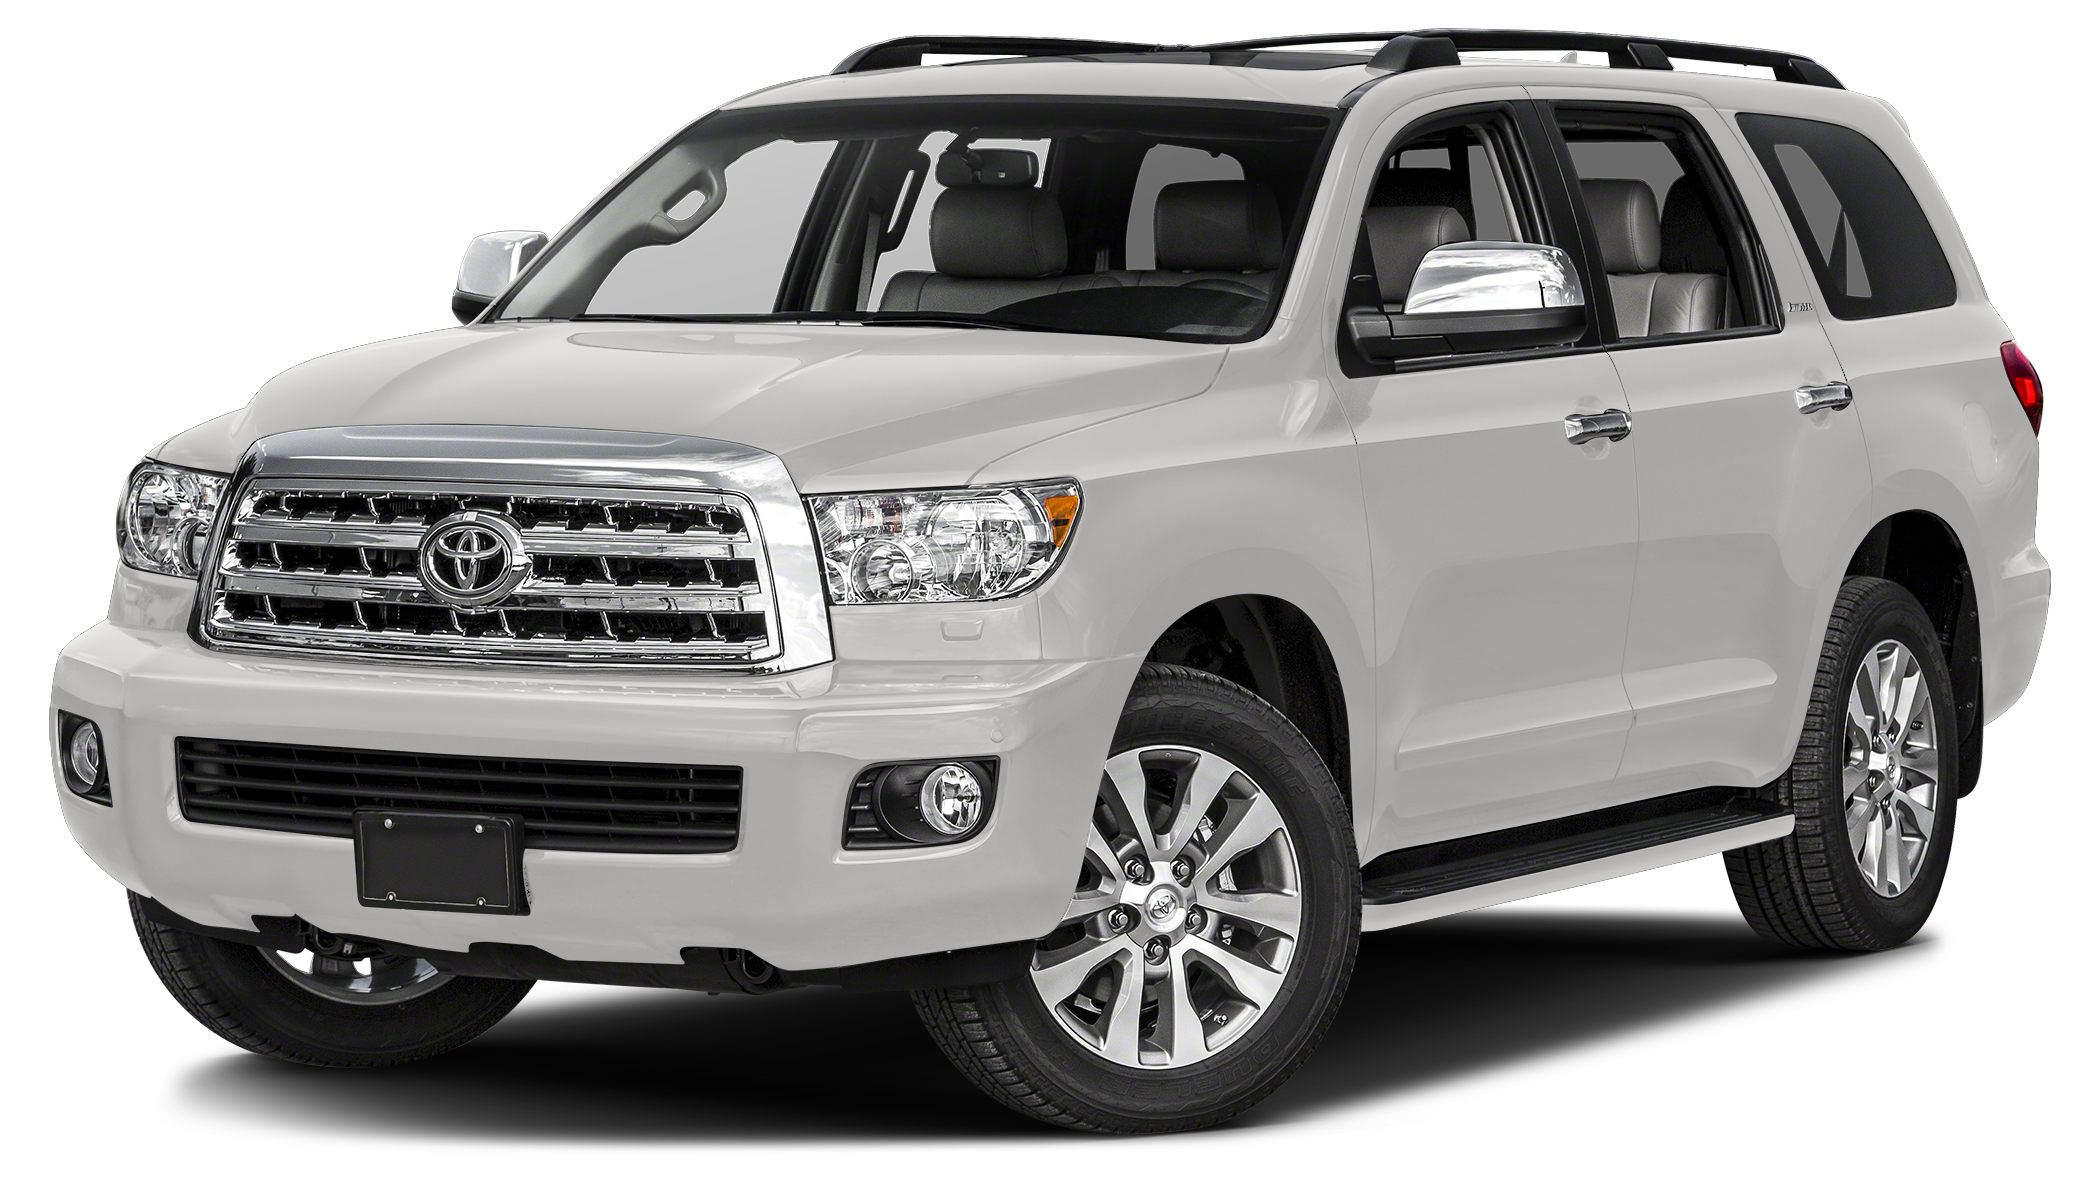 2016 Toyota Sequoia Limited This quality SUV is the noteworthy SUV youve been seeking New In St